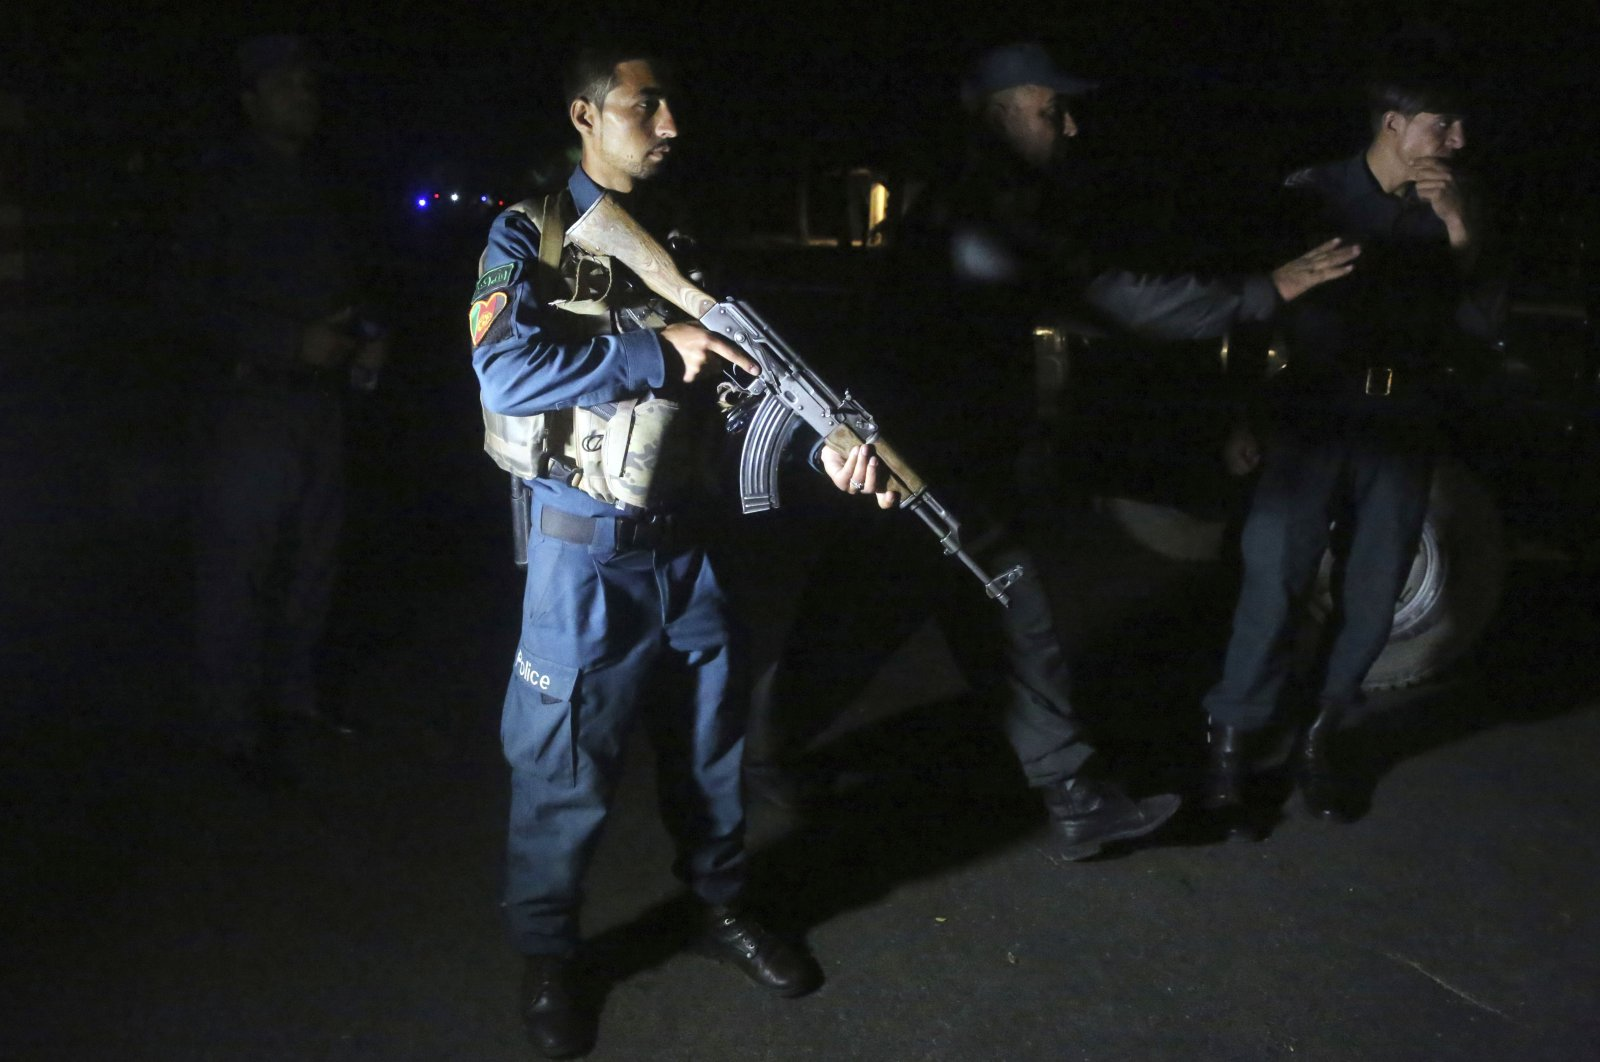 Afghan police arrive at the site of a bombing in a mosque in Kabul, Afghanistan, June 2, 2020. (AP Photo)